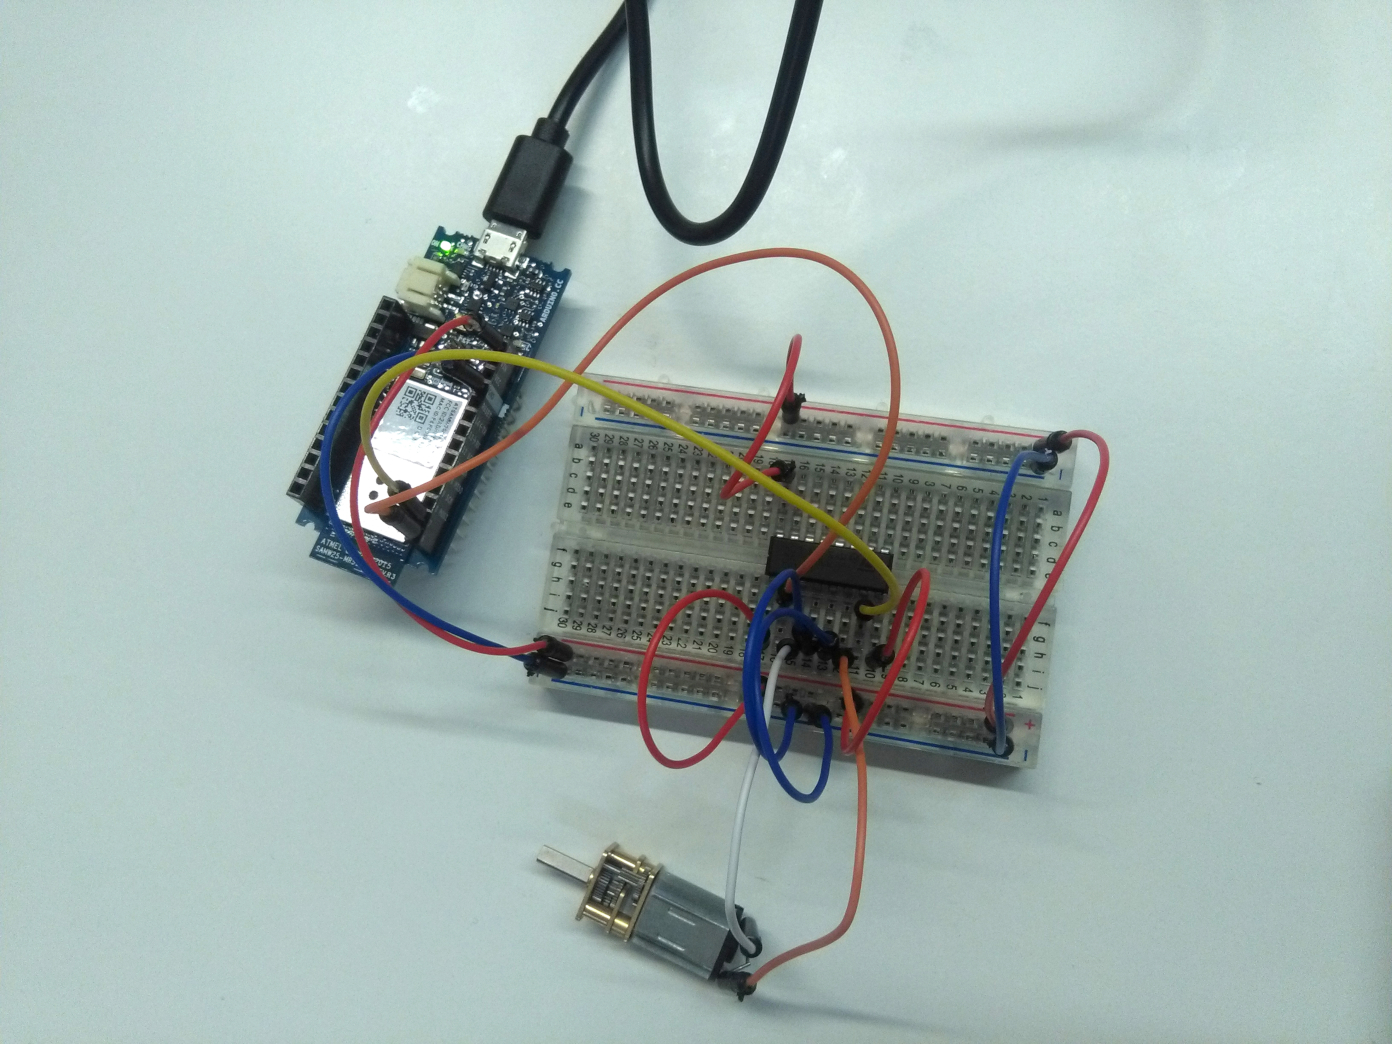 Driving A Dc Motor With An Arduino And The L293d Driver Wia Breadboard Circuit Of Above Is Shown Below Once Thats All Connected It Should Look Little Something Like This